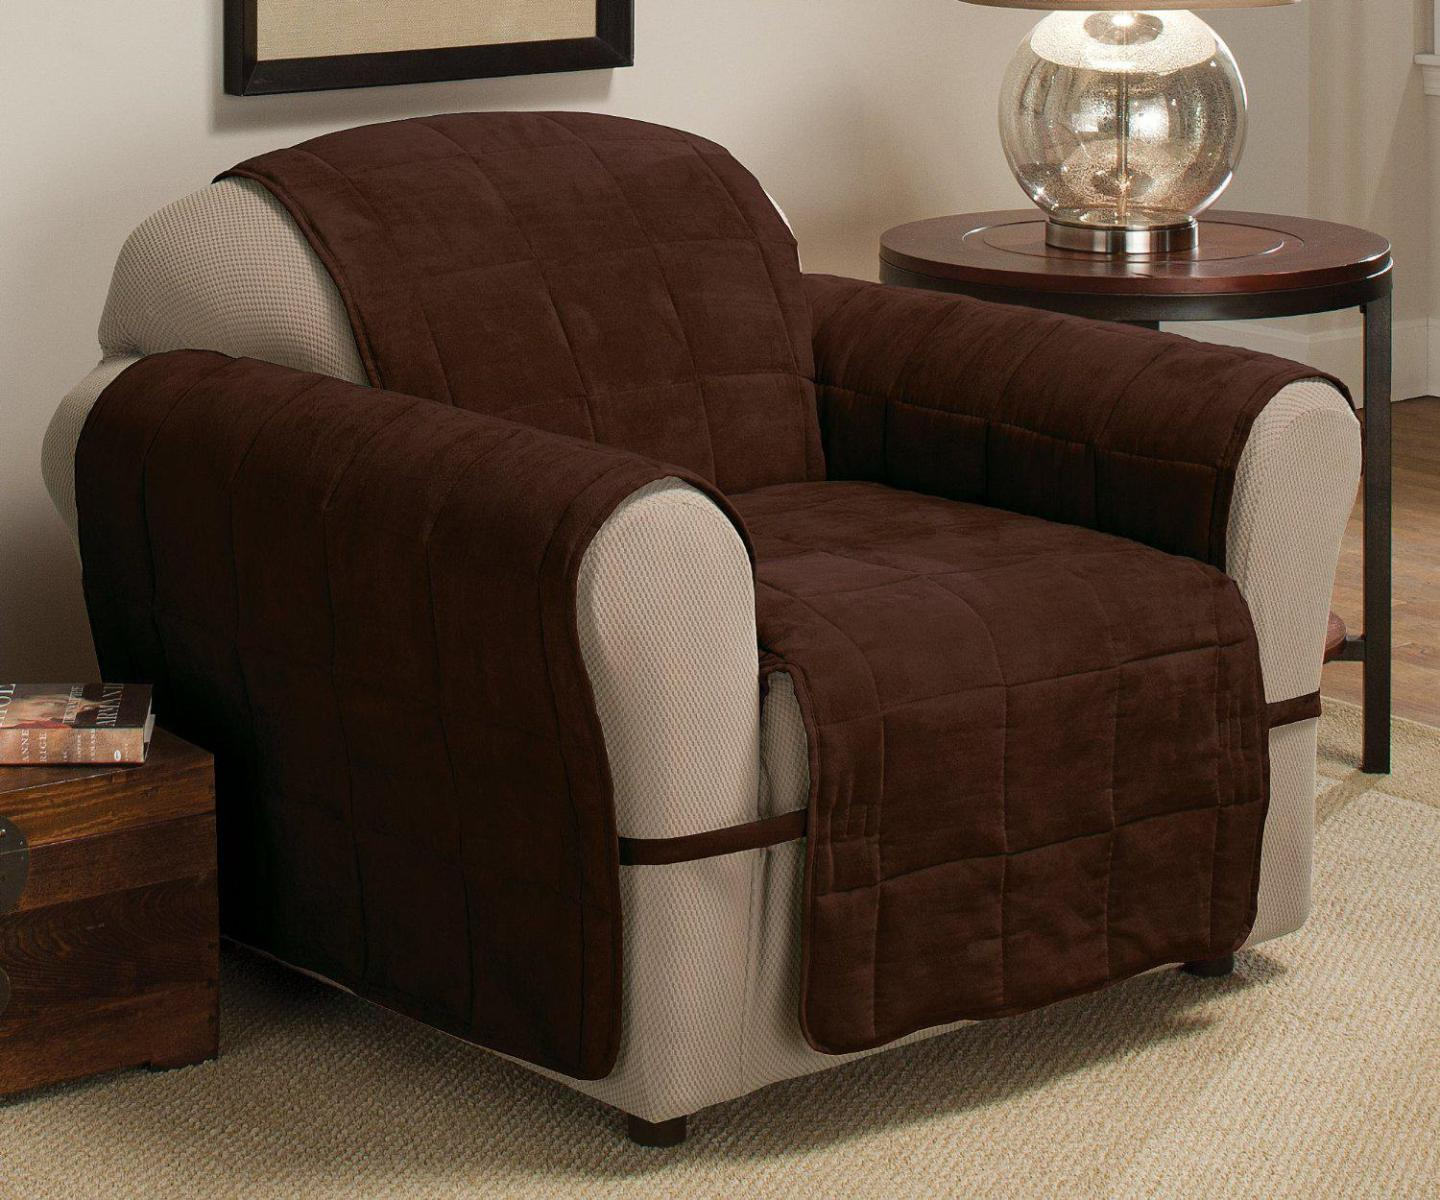 Image of: Couch Protector For Sectionals